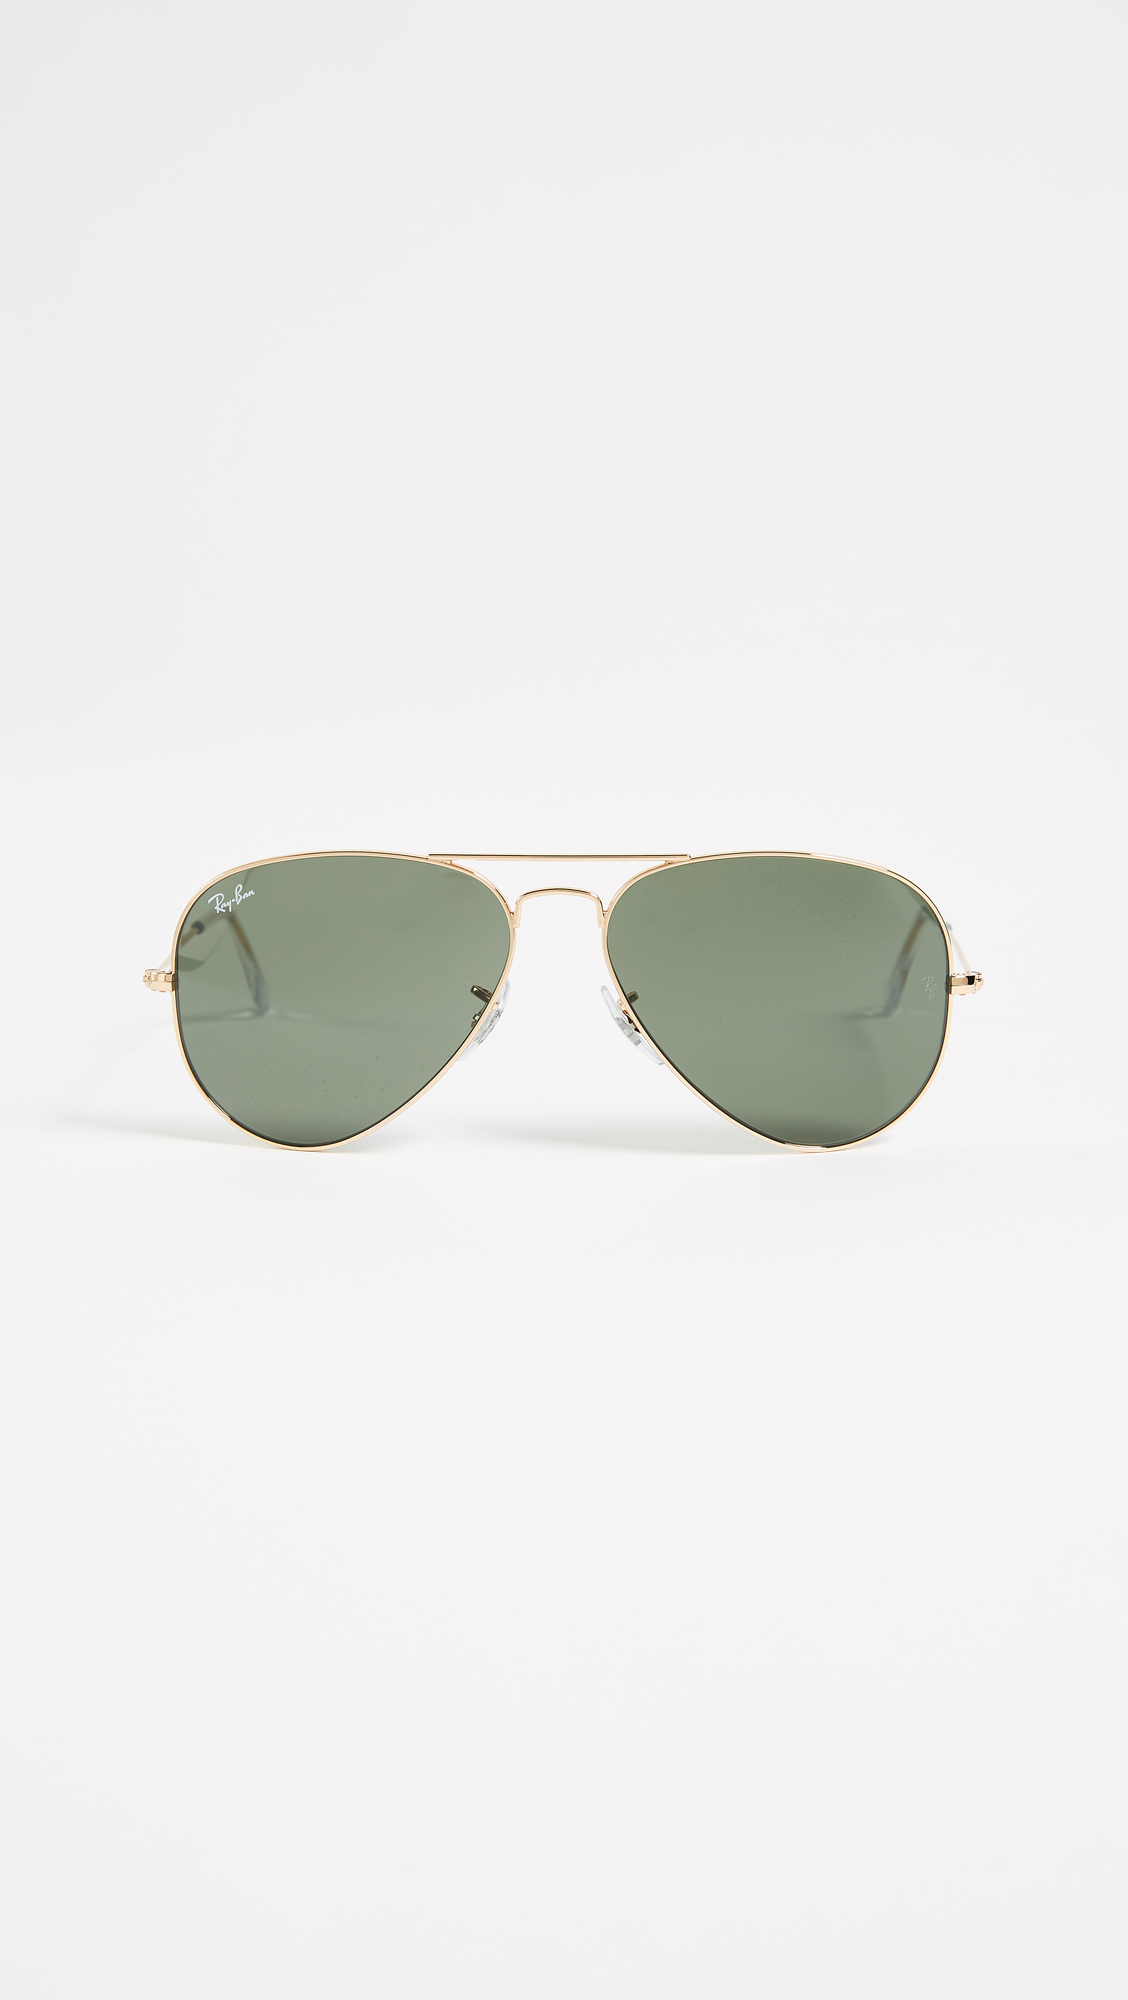 f89e0d036a Ray-Ban RB3025 Original Aviator Sunglasses